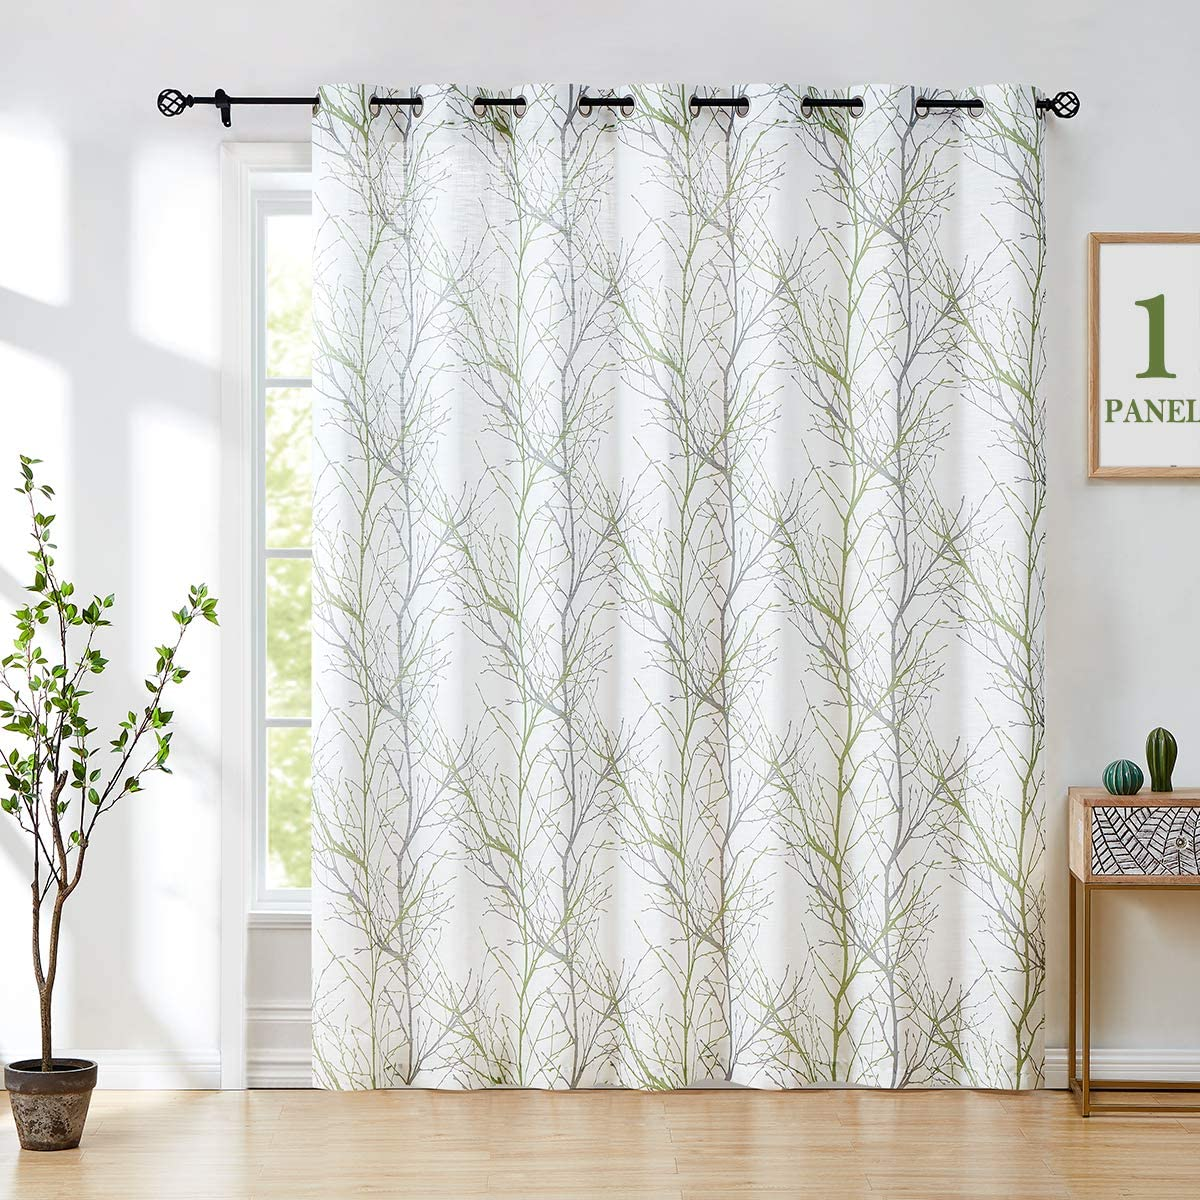 Fmfunctex Green Tree White Sliding Door Curtain Panel 108inches Length Extra Wide 100 w Linen Textured Semi Sheer Curtain for Privacy Patio Door Curtain Panel 1pc Grommet Top 9ft